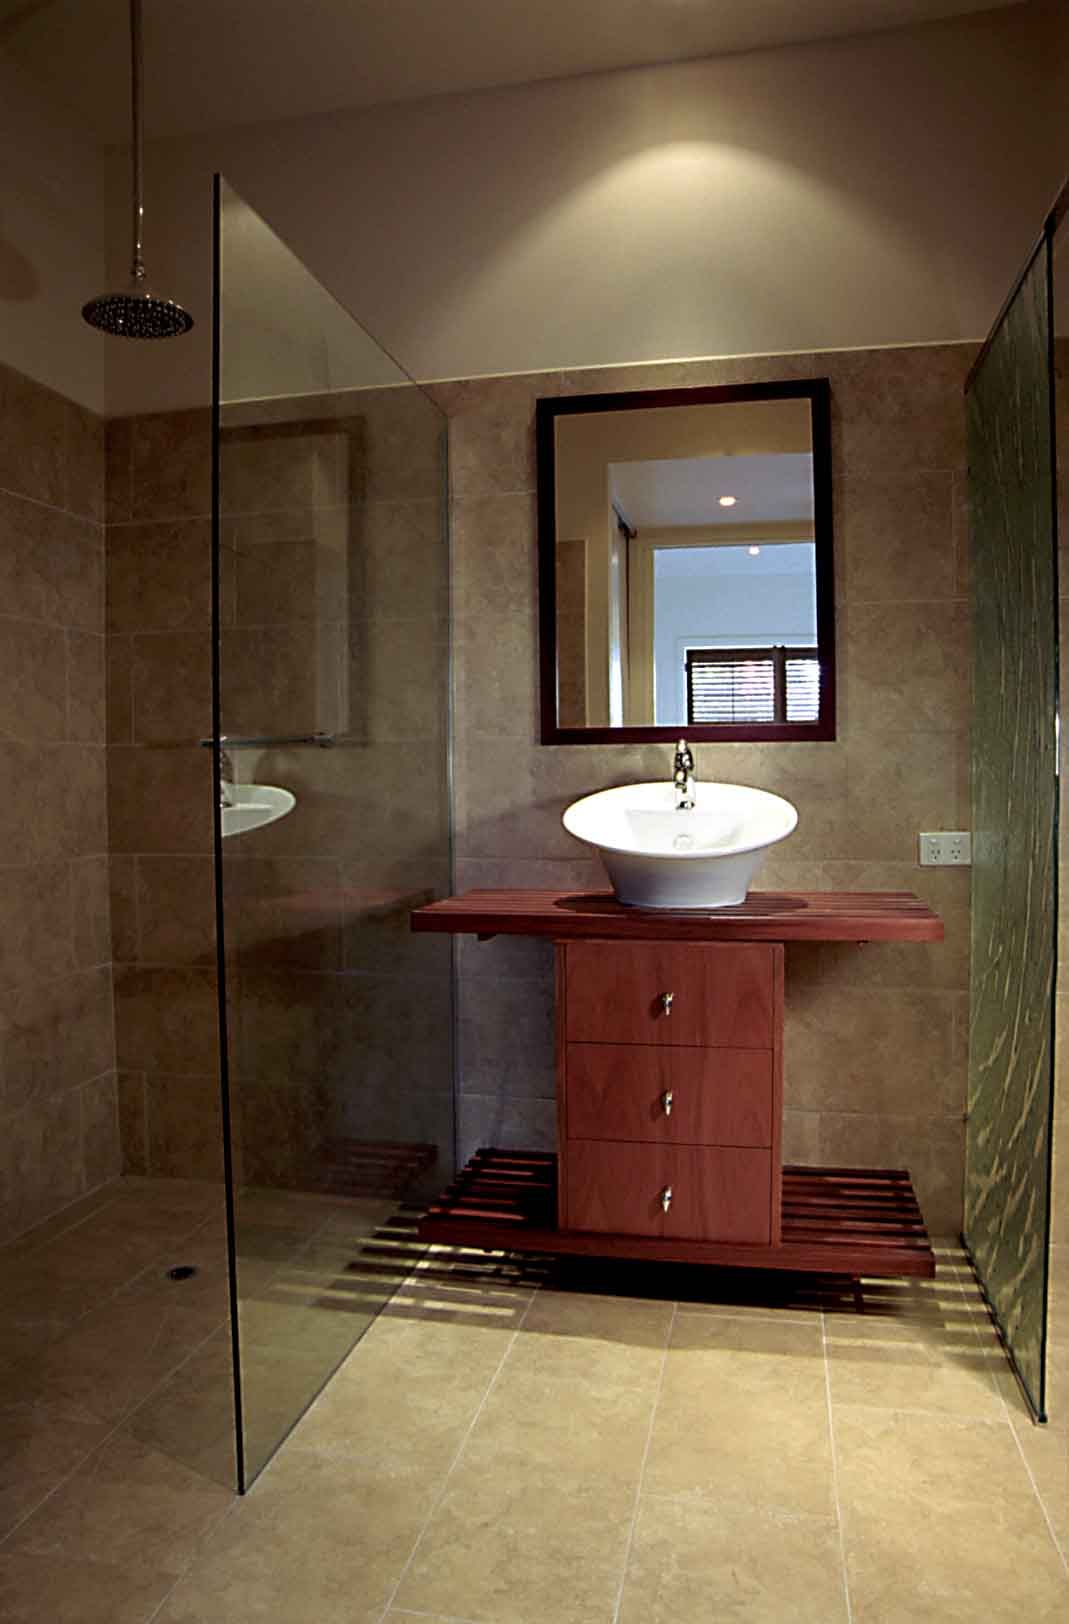 Wet room design for small bathrooms small ensuite for Tiny shower room design